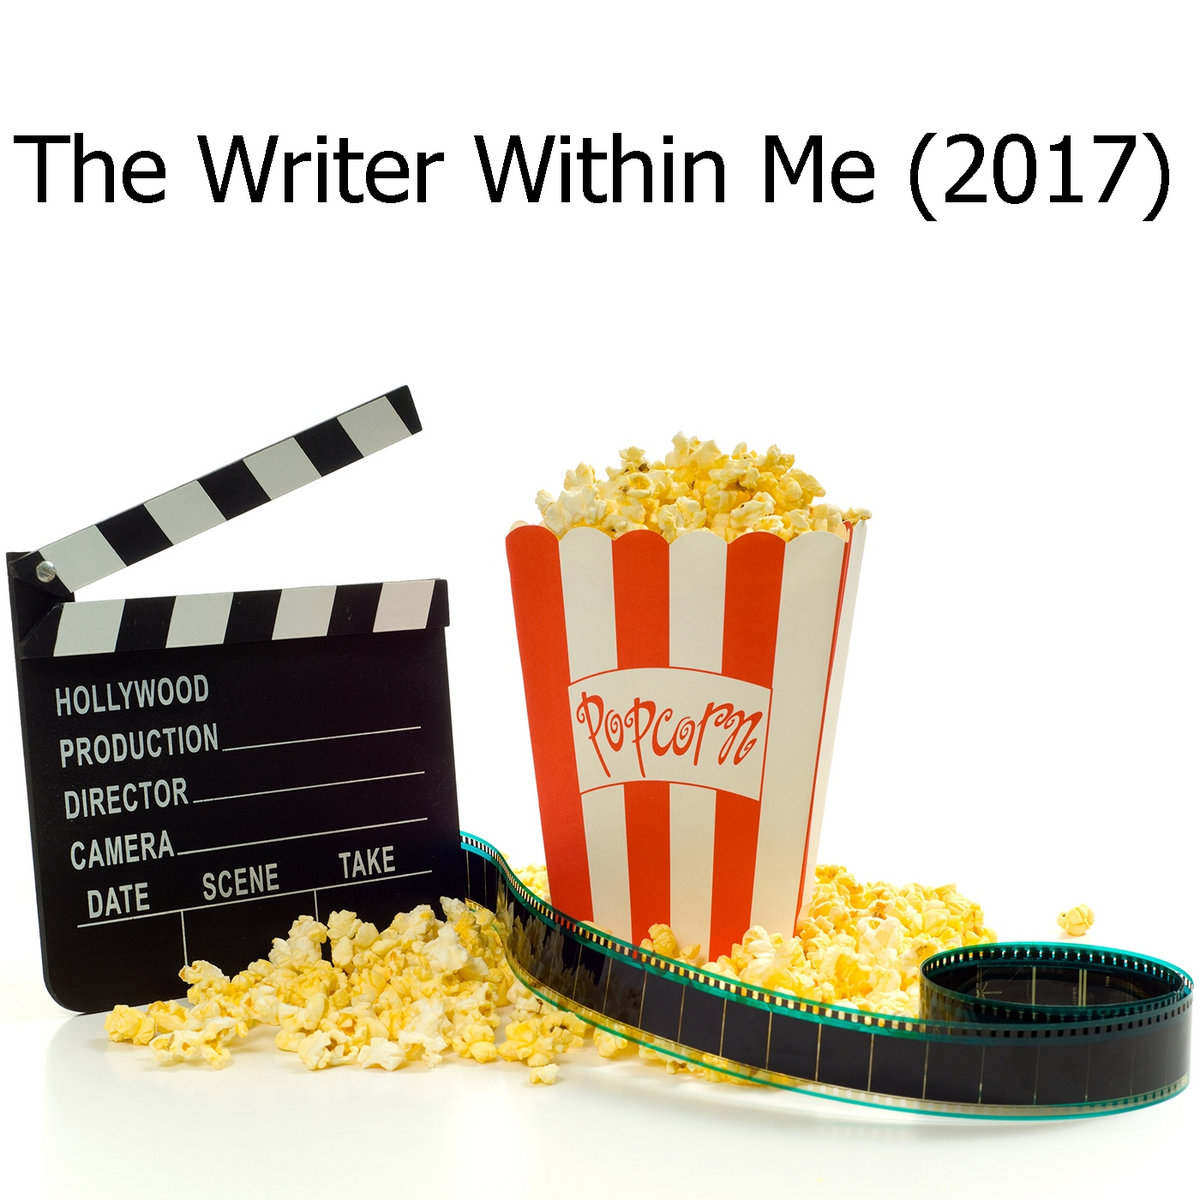 24 Movie Online 720p Streaming Movie Online Hq Full Torrent 2017 The Writer Within